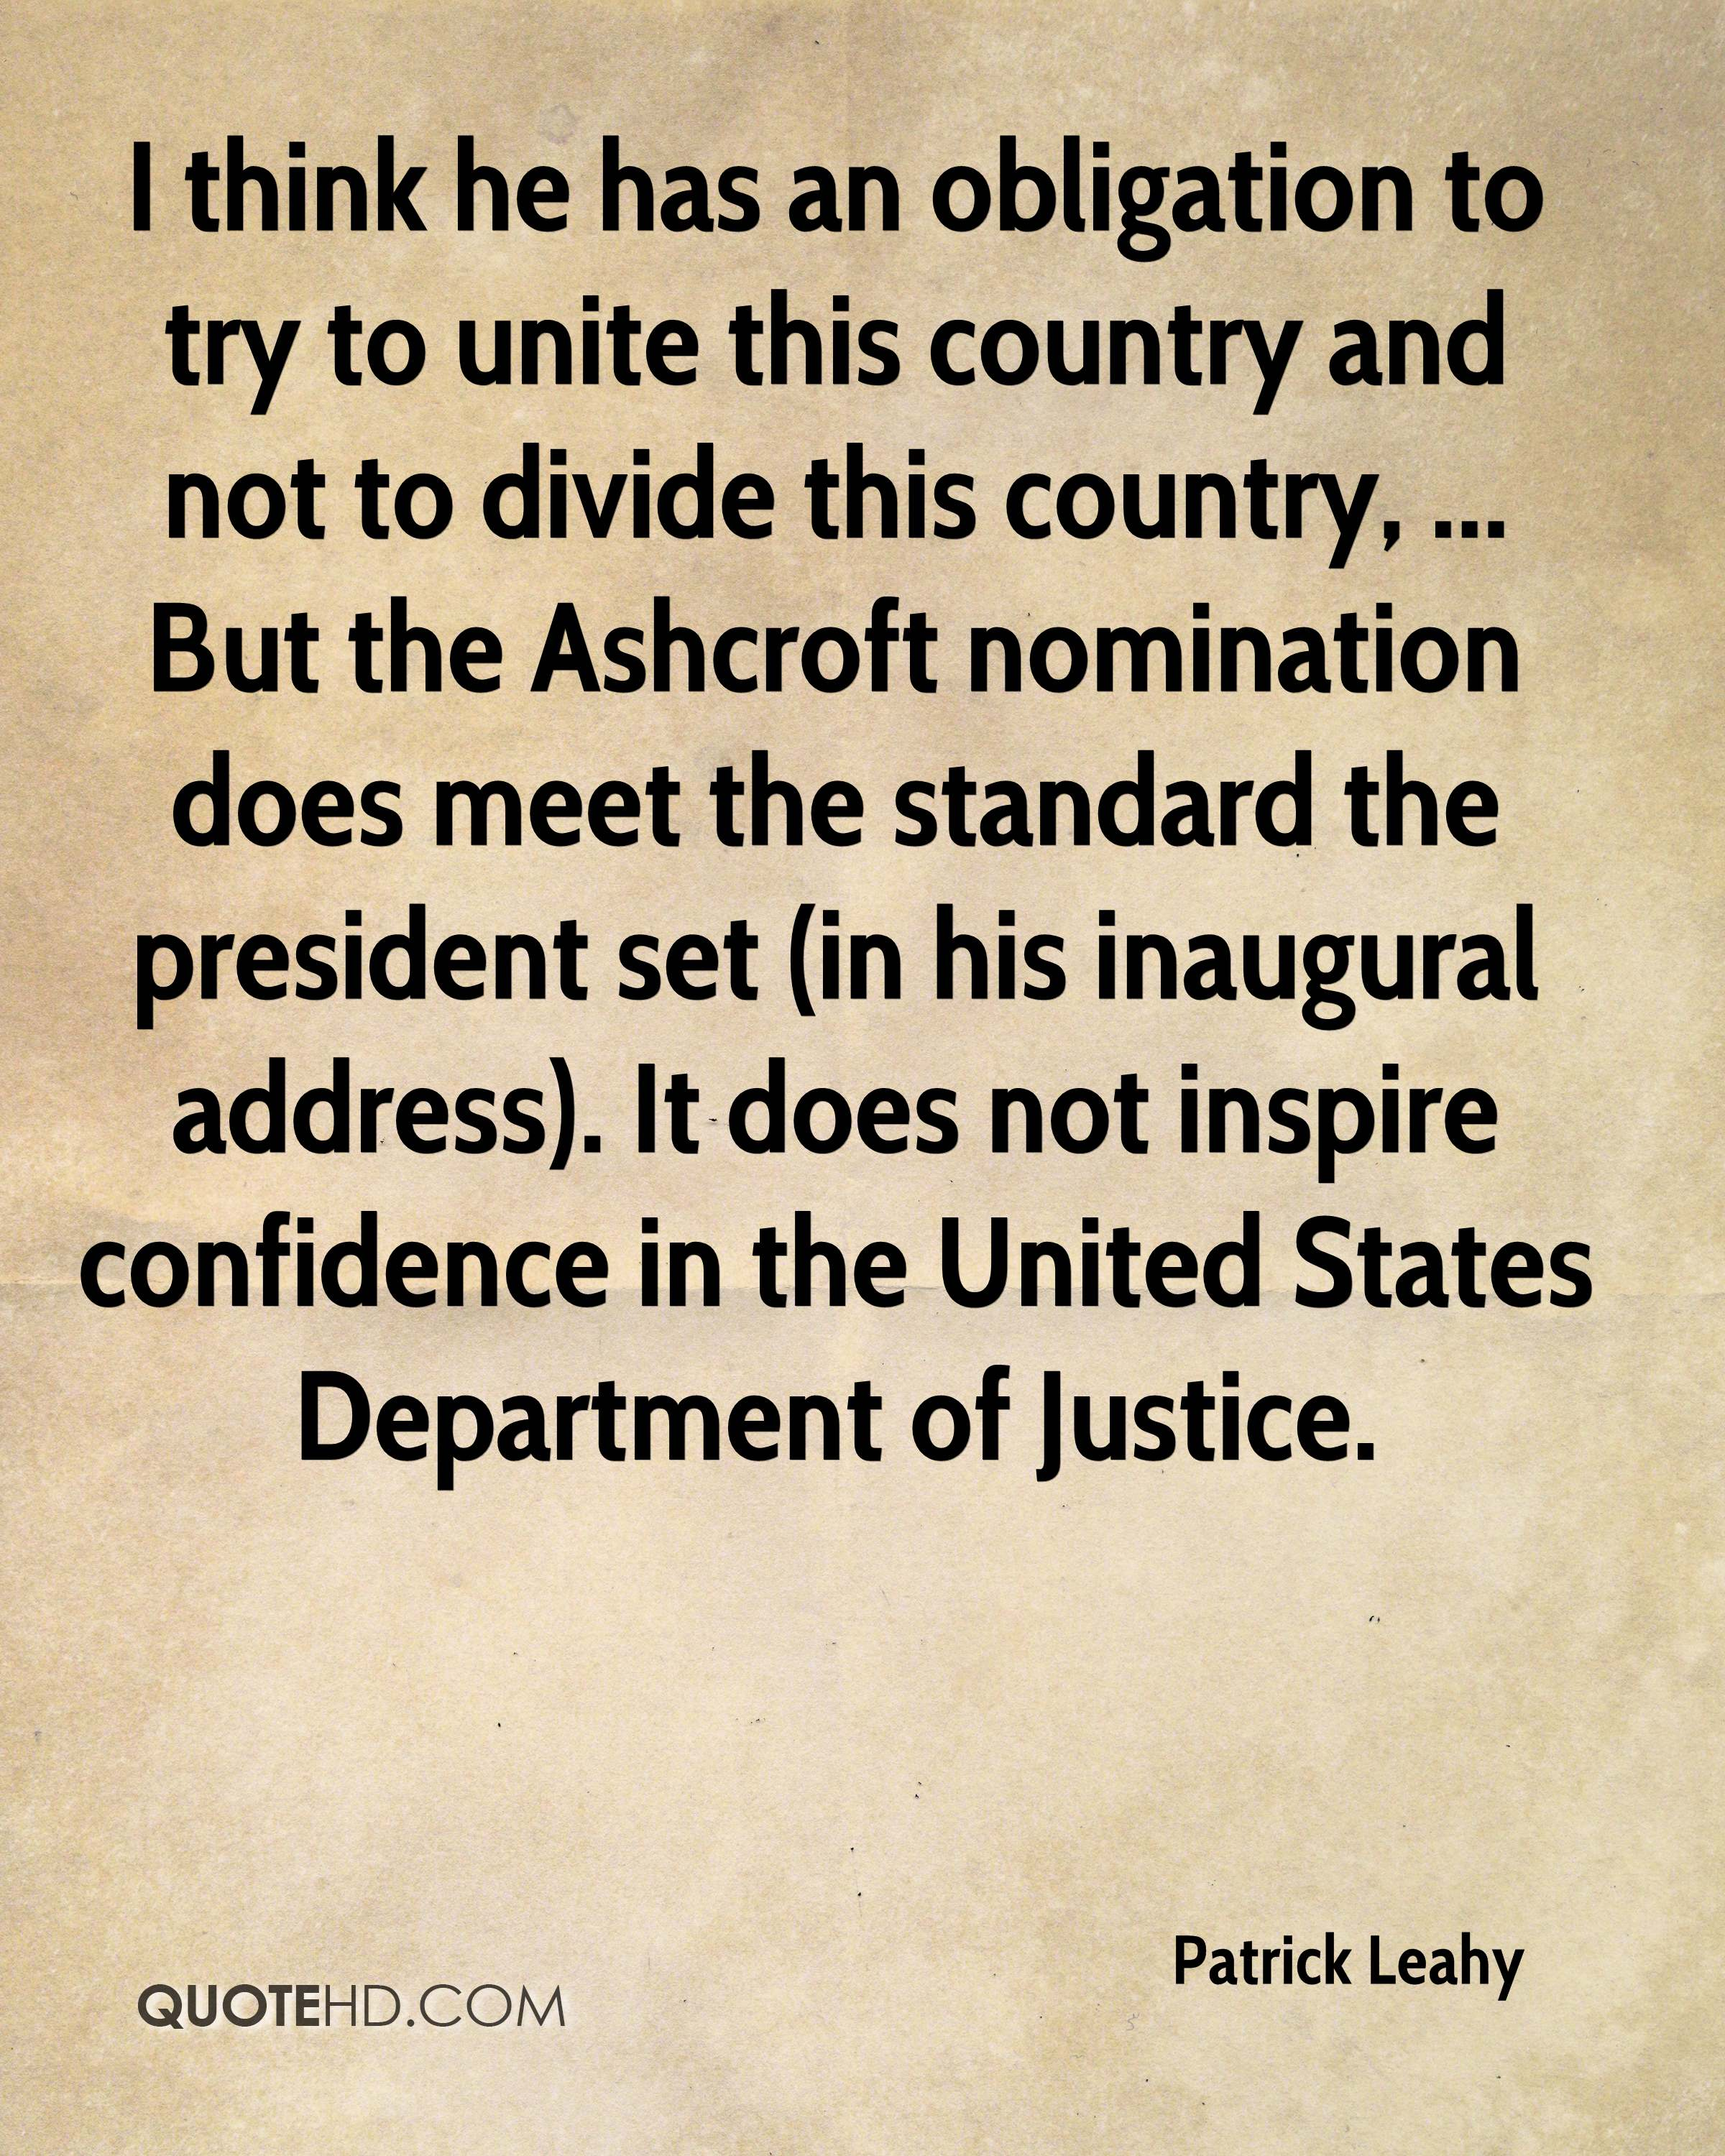 I think he has an obligation to try to unite this country and not to divide this country, ... But the Ashcroft nomination does meet the standard the president set (in his inaugural address). It does not inspire confidence in the United States Department of Justice.